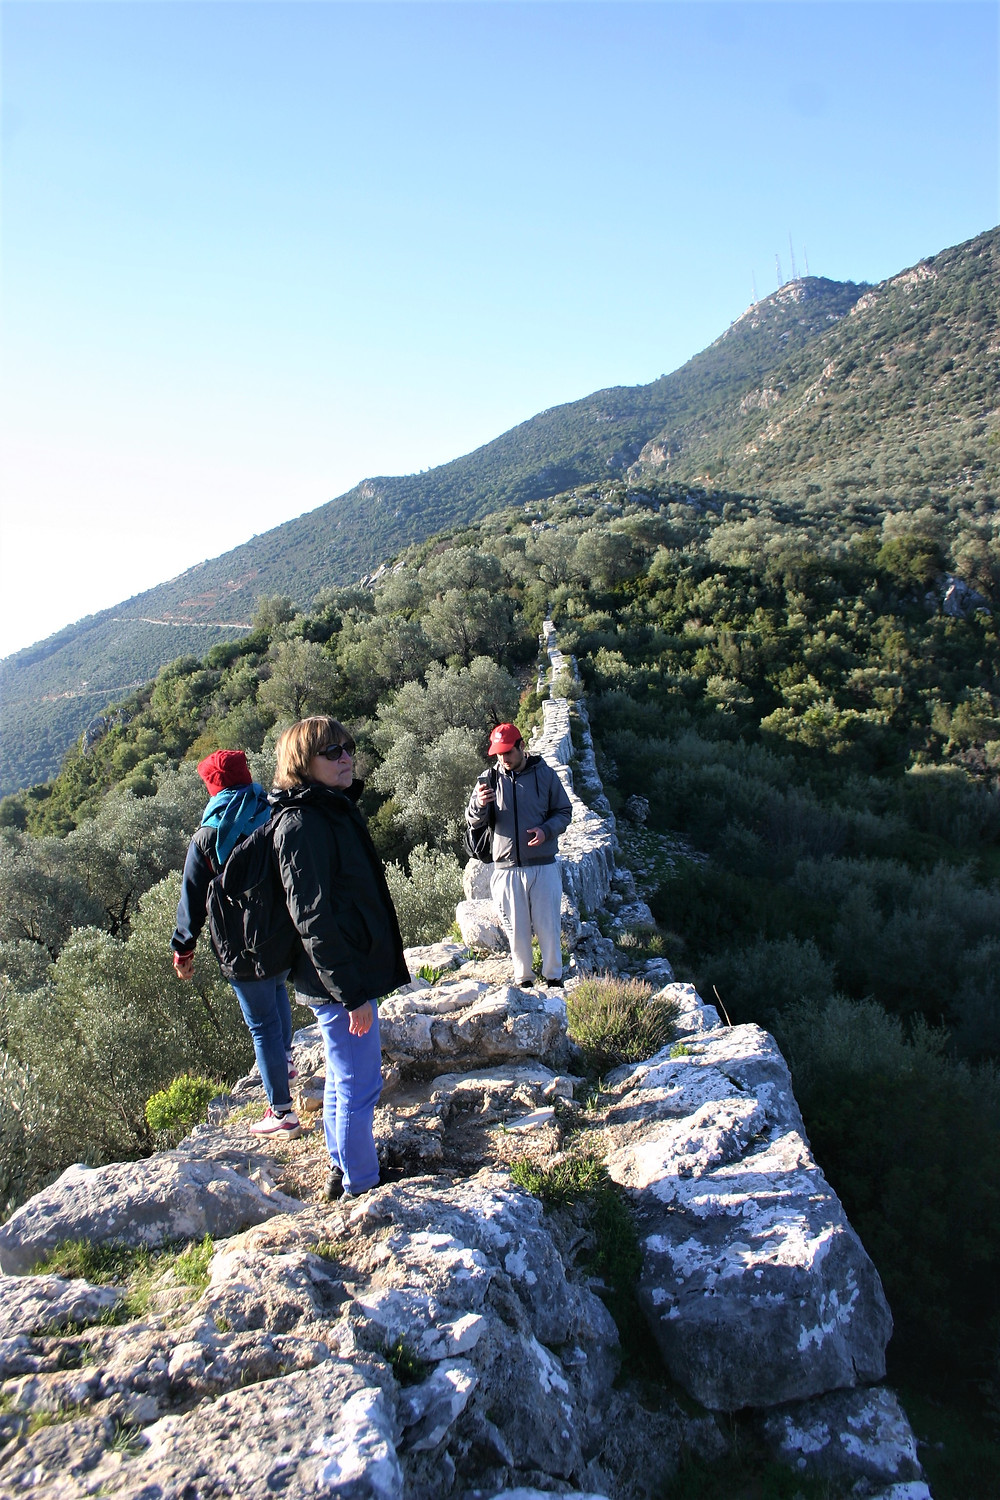 Trekkers on the Lycian Way